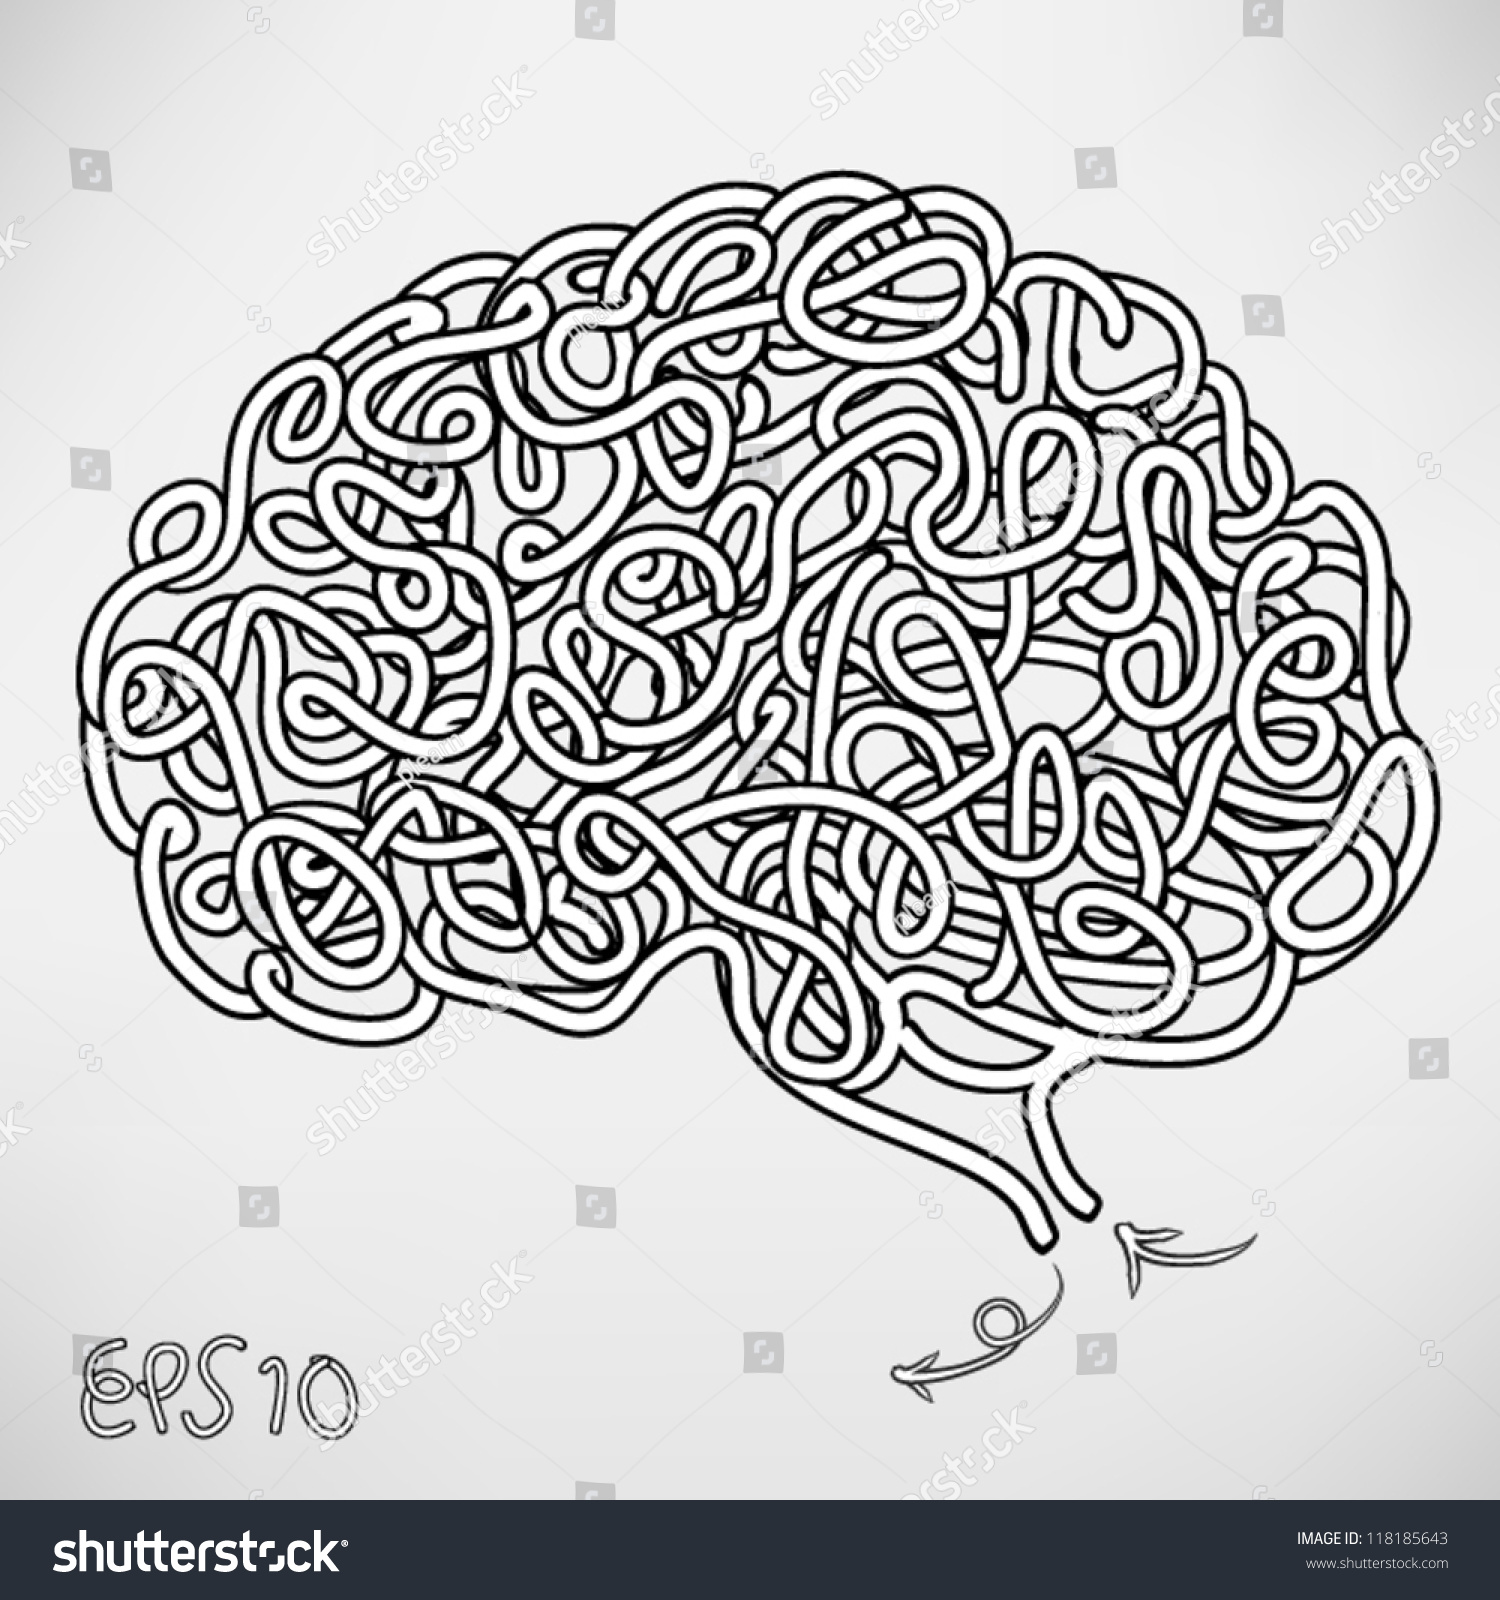 The human brain coloring book diamond - Hand Drawn Brain A Thinking Human Concept Eps10 Vector Background